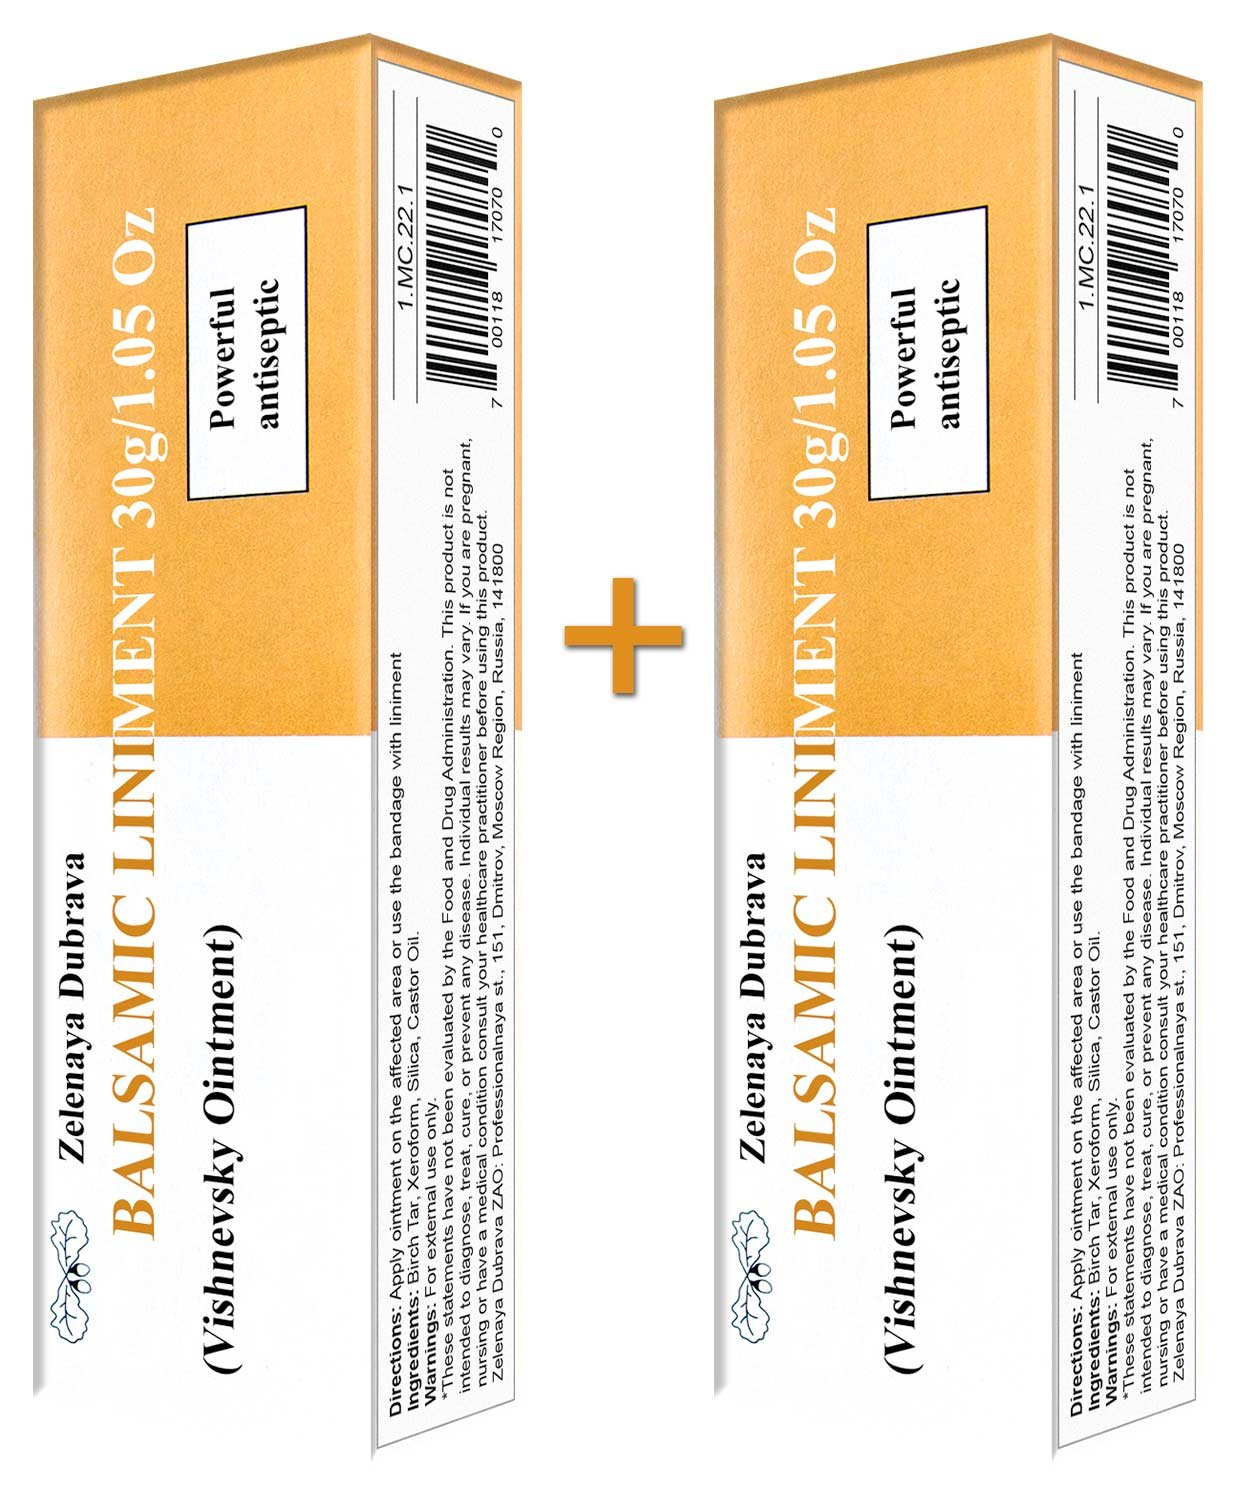 What is the difference between Vishnevskys ointment and Ichthyolka